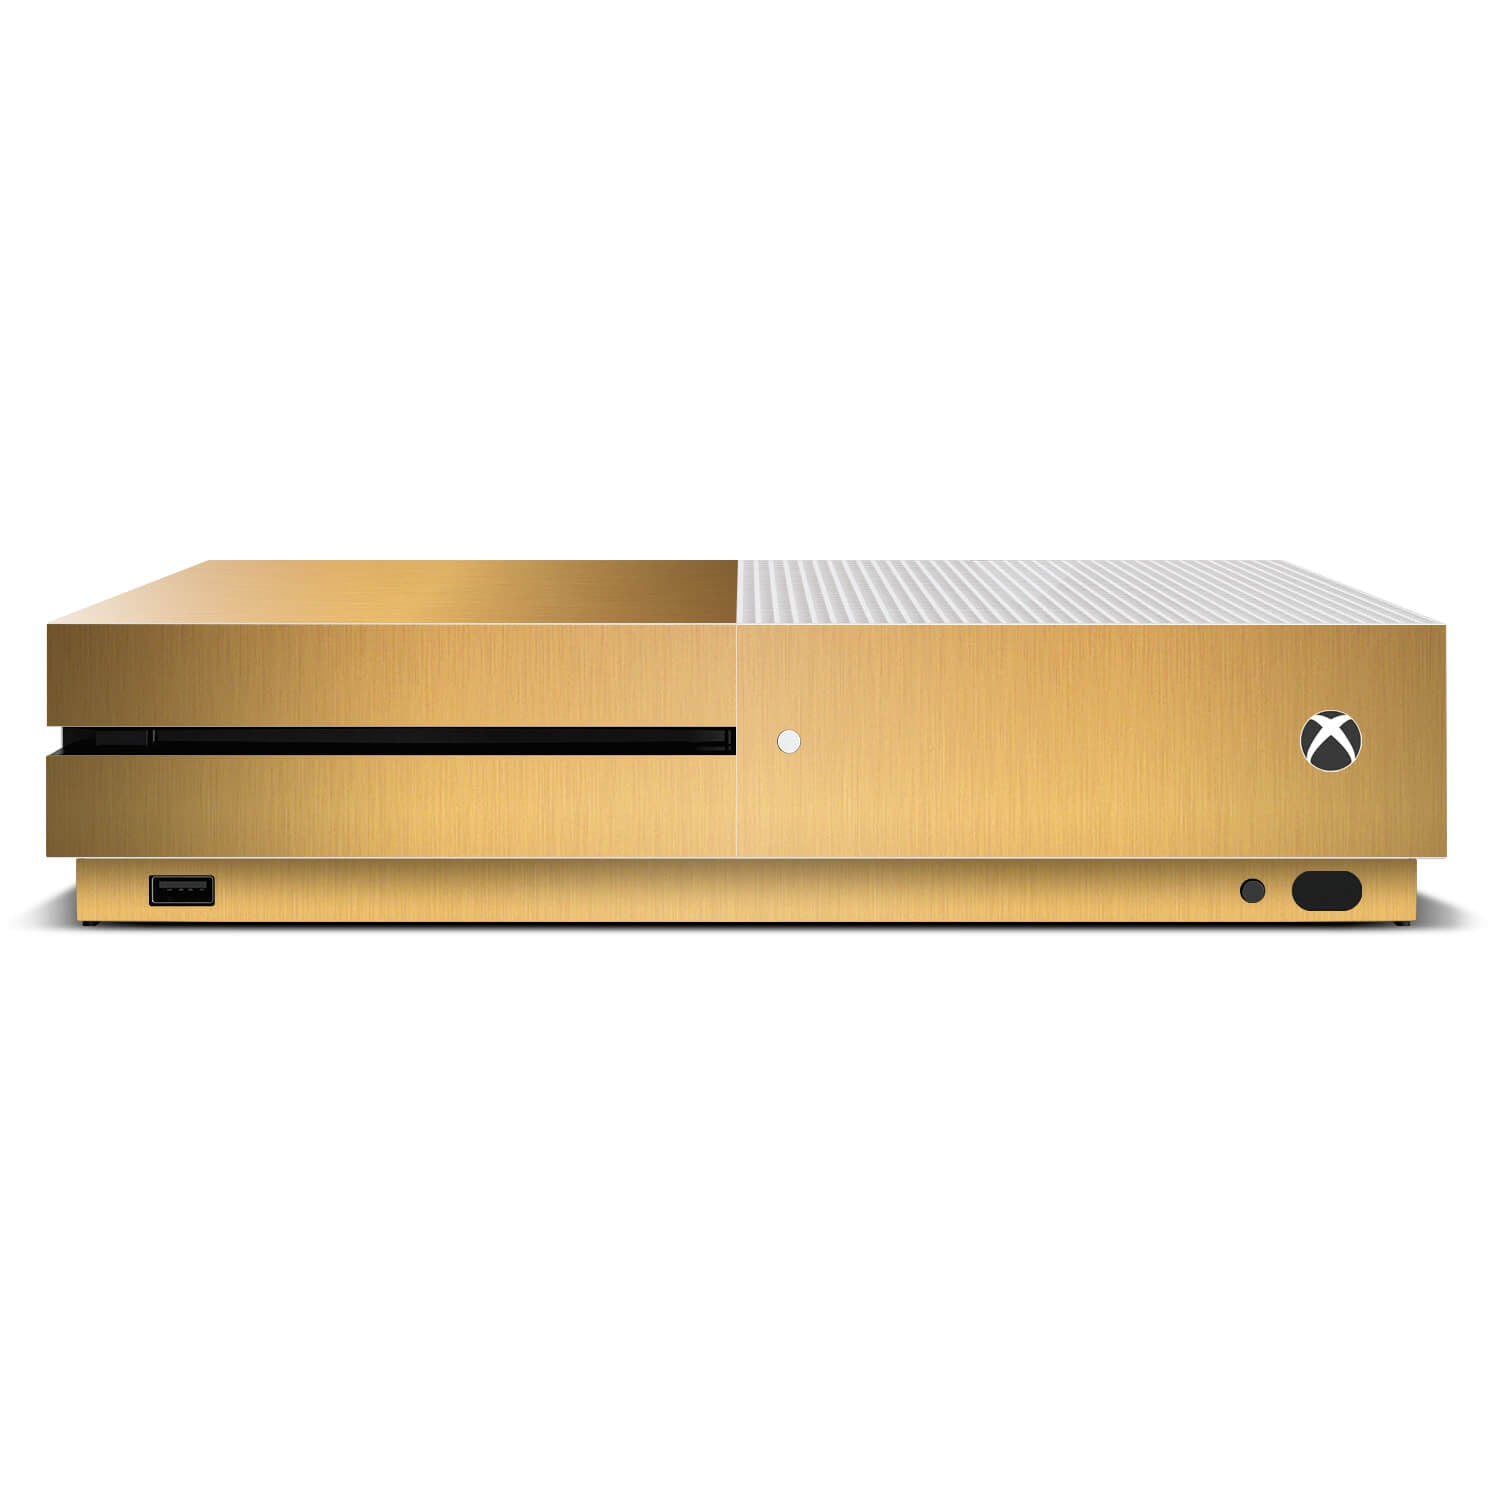 xbox one gold skin - photo #17